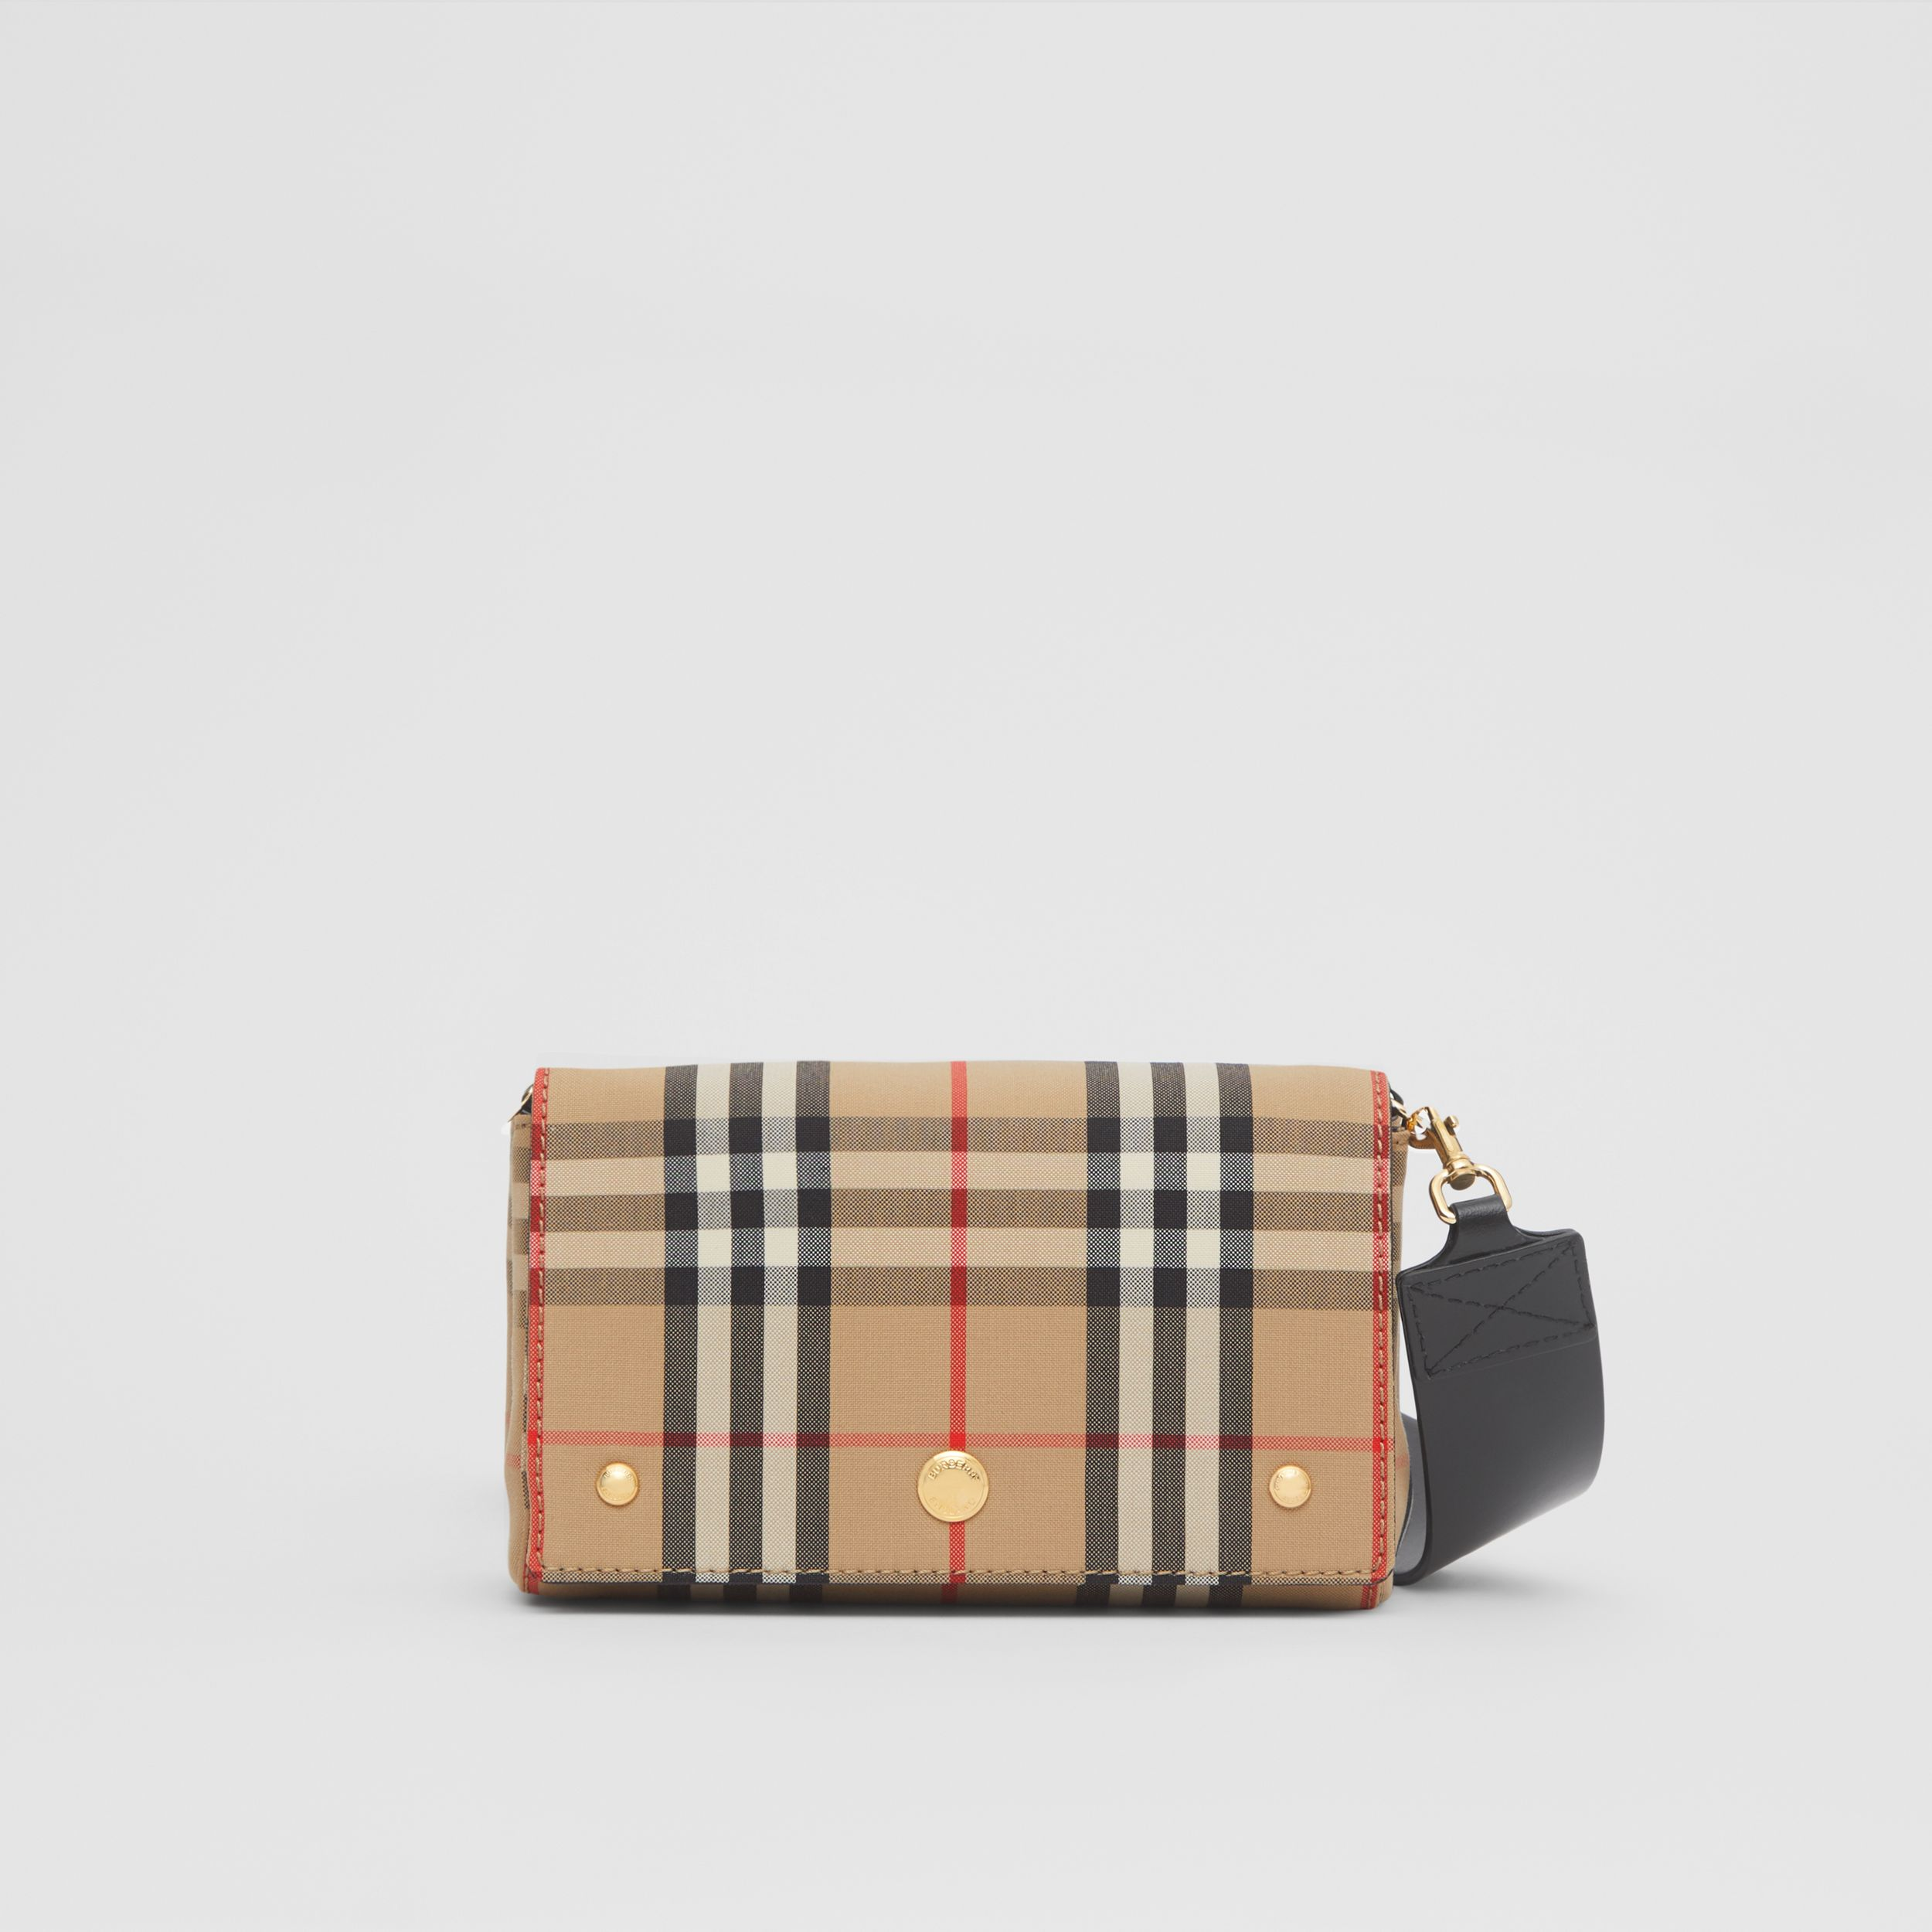 Small Vintage Check and Leather Crossbody Bag in Archive Beige - Women | Burberry - 1